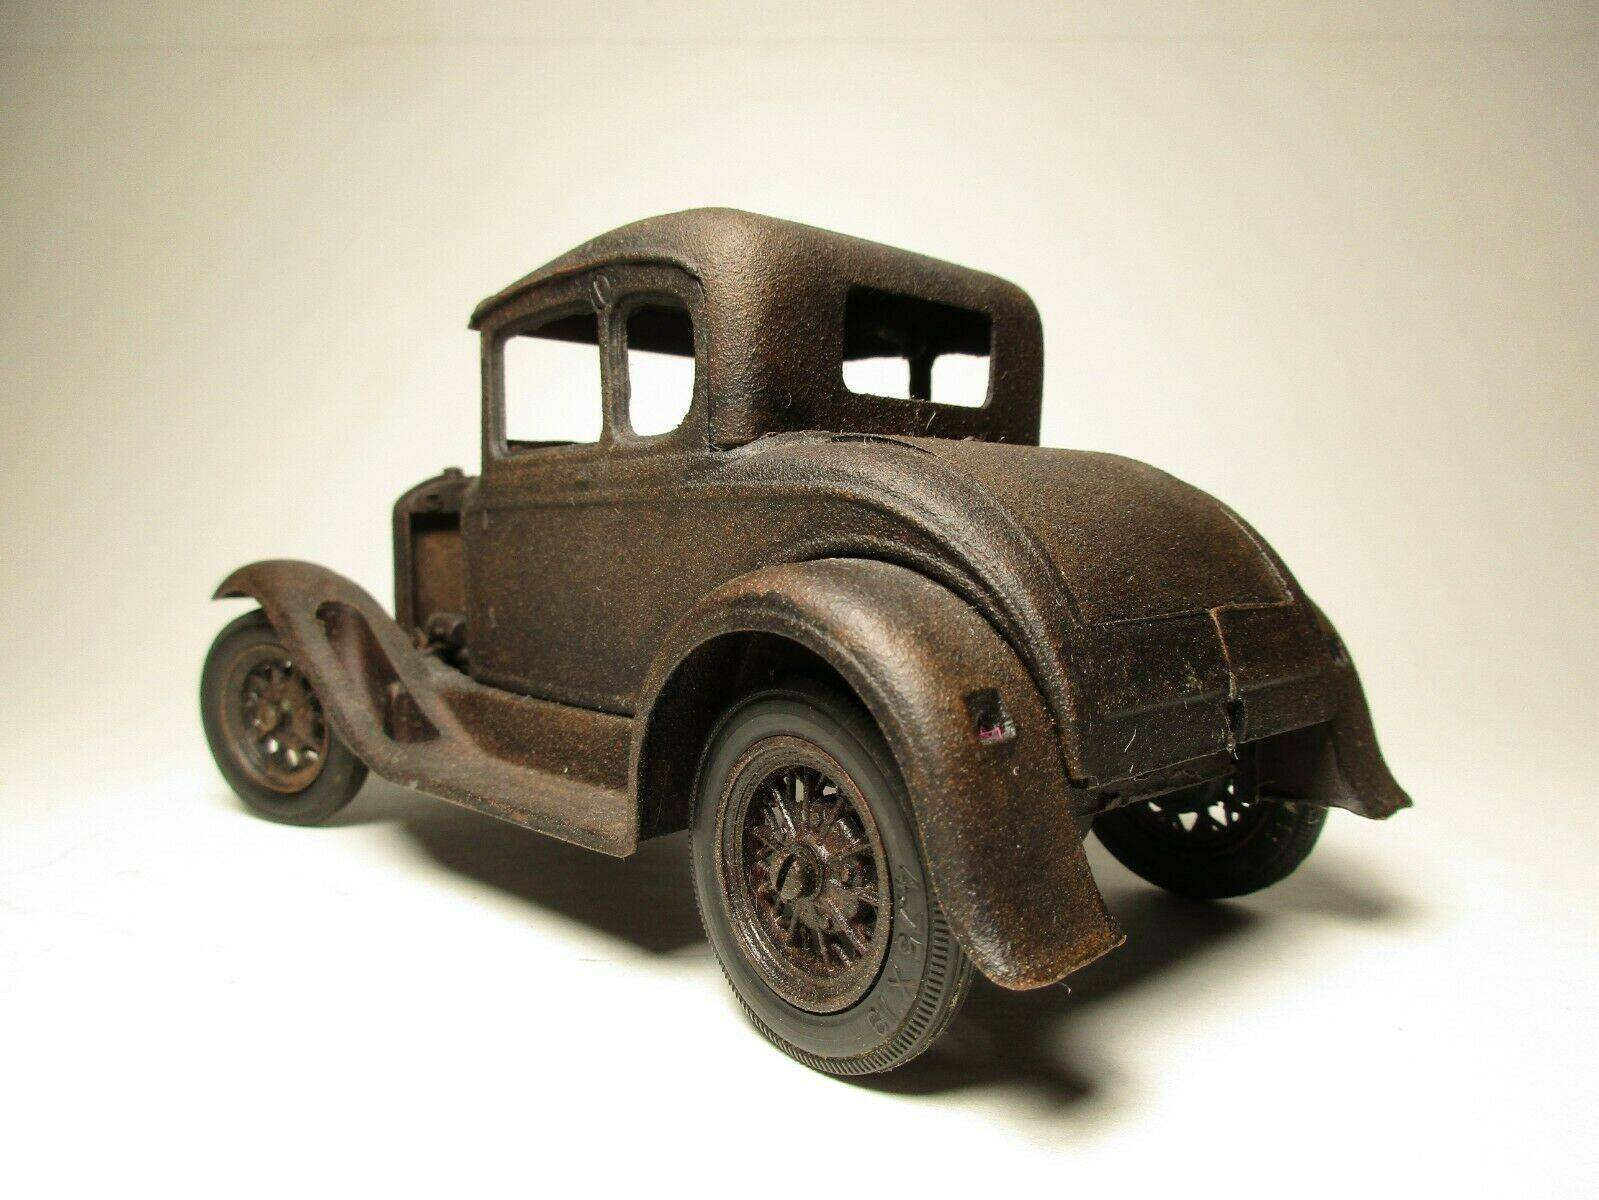 Vintage-Hubley-1932-Ford-Model-A-Coupe-and-Engine---Rusty-Weathered-Barn-Find-4